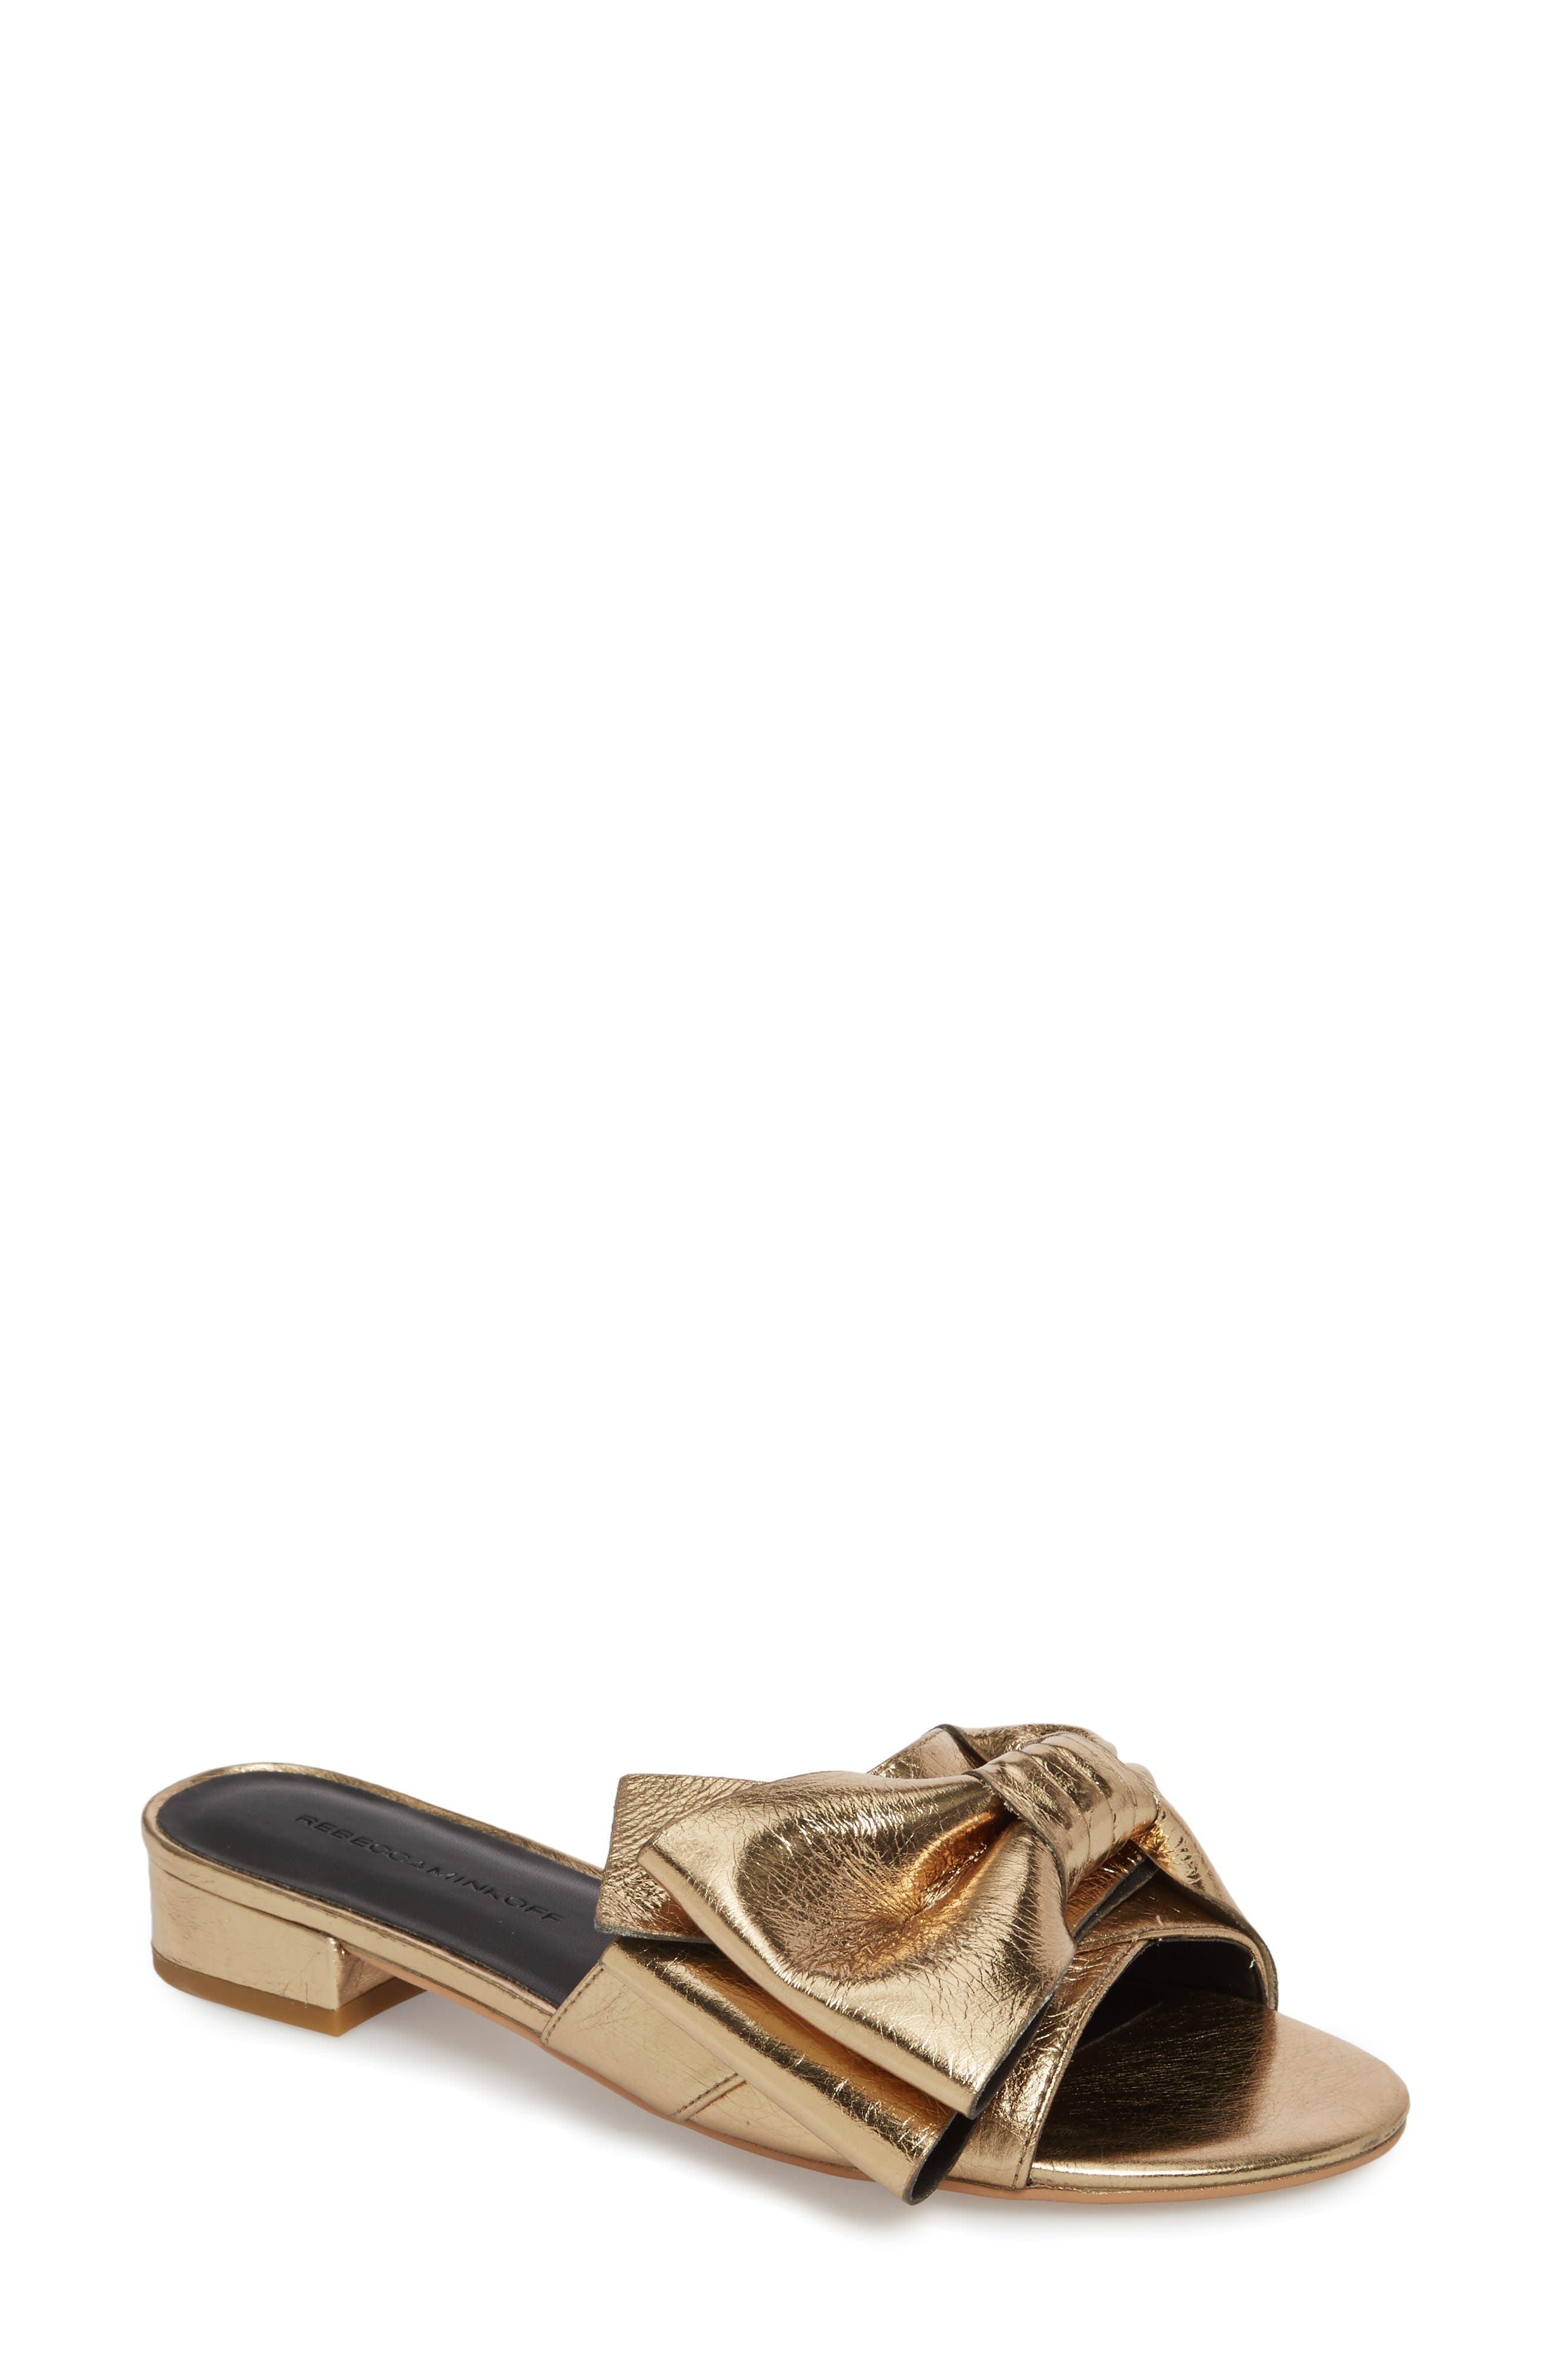 Calista Sandal,                             Main thumbnail 3, color,